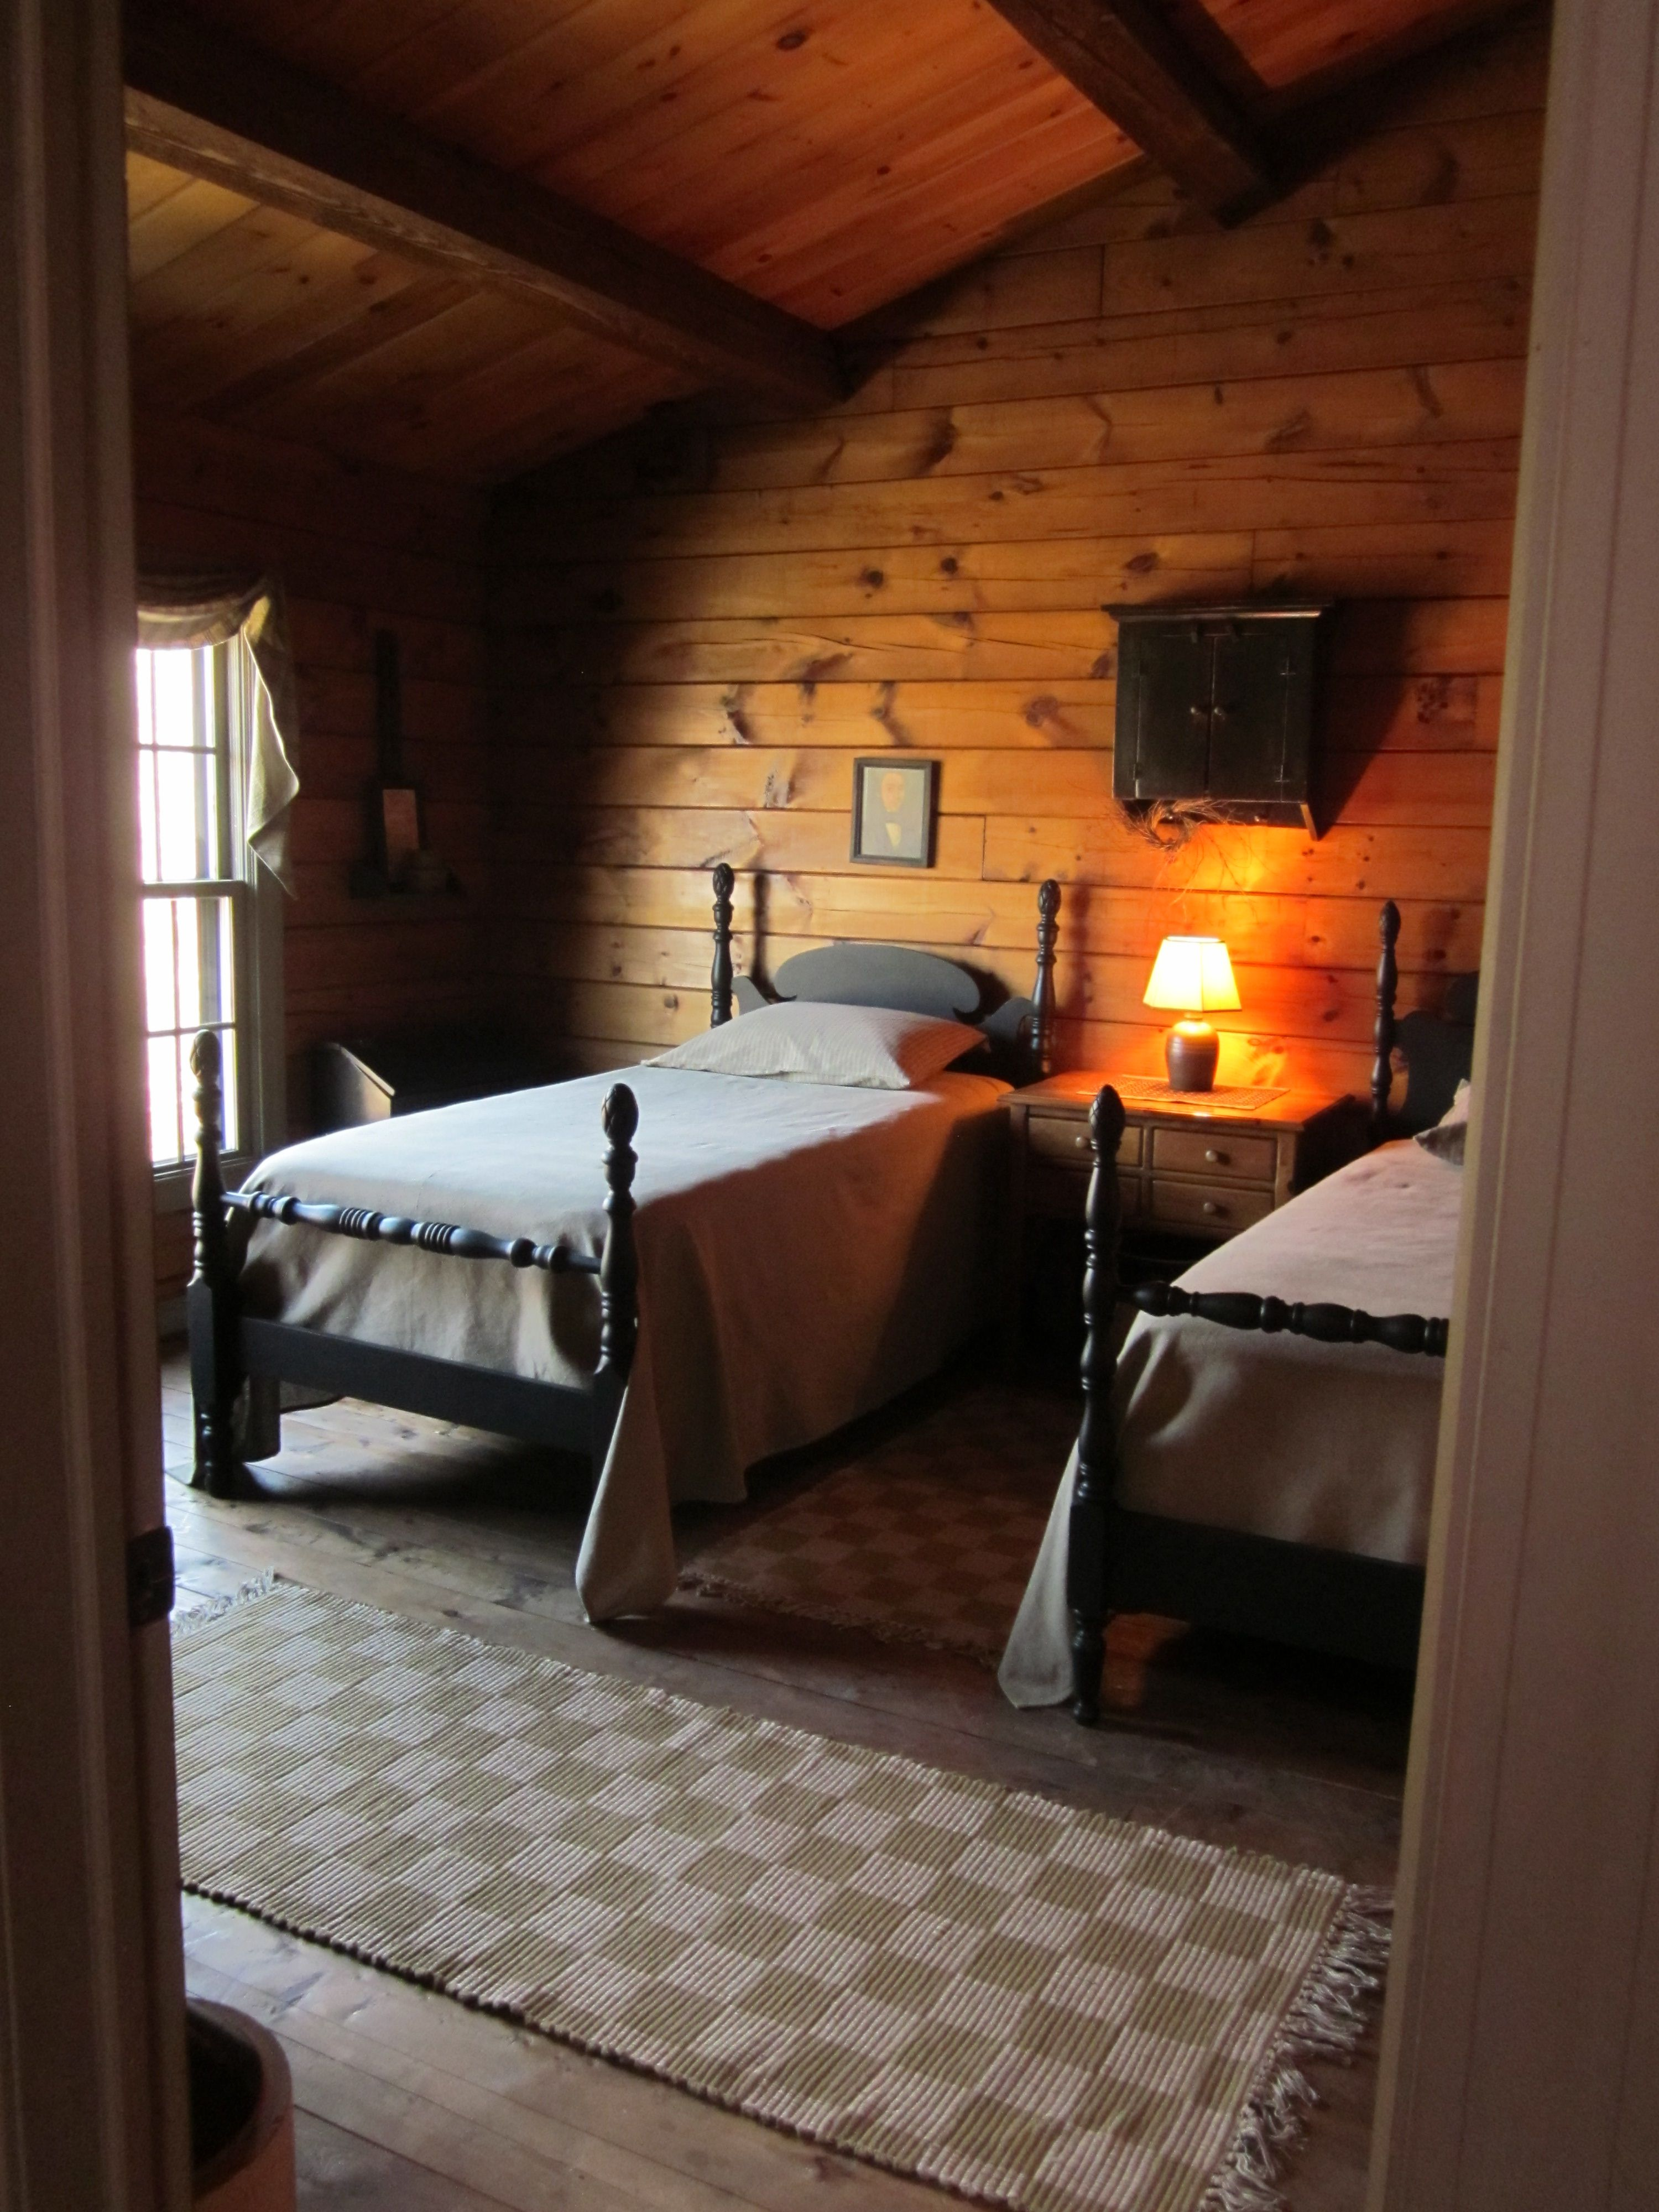 Cabin Bedroom Decor Ideas: Inspiration For The Bedroom Of A Rustic Cabin, Cottage Or